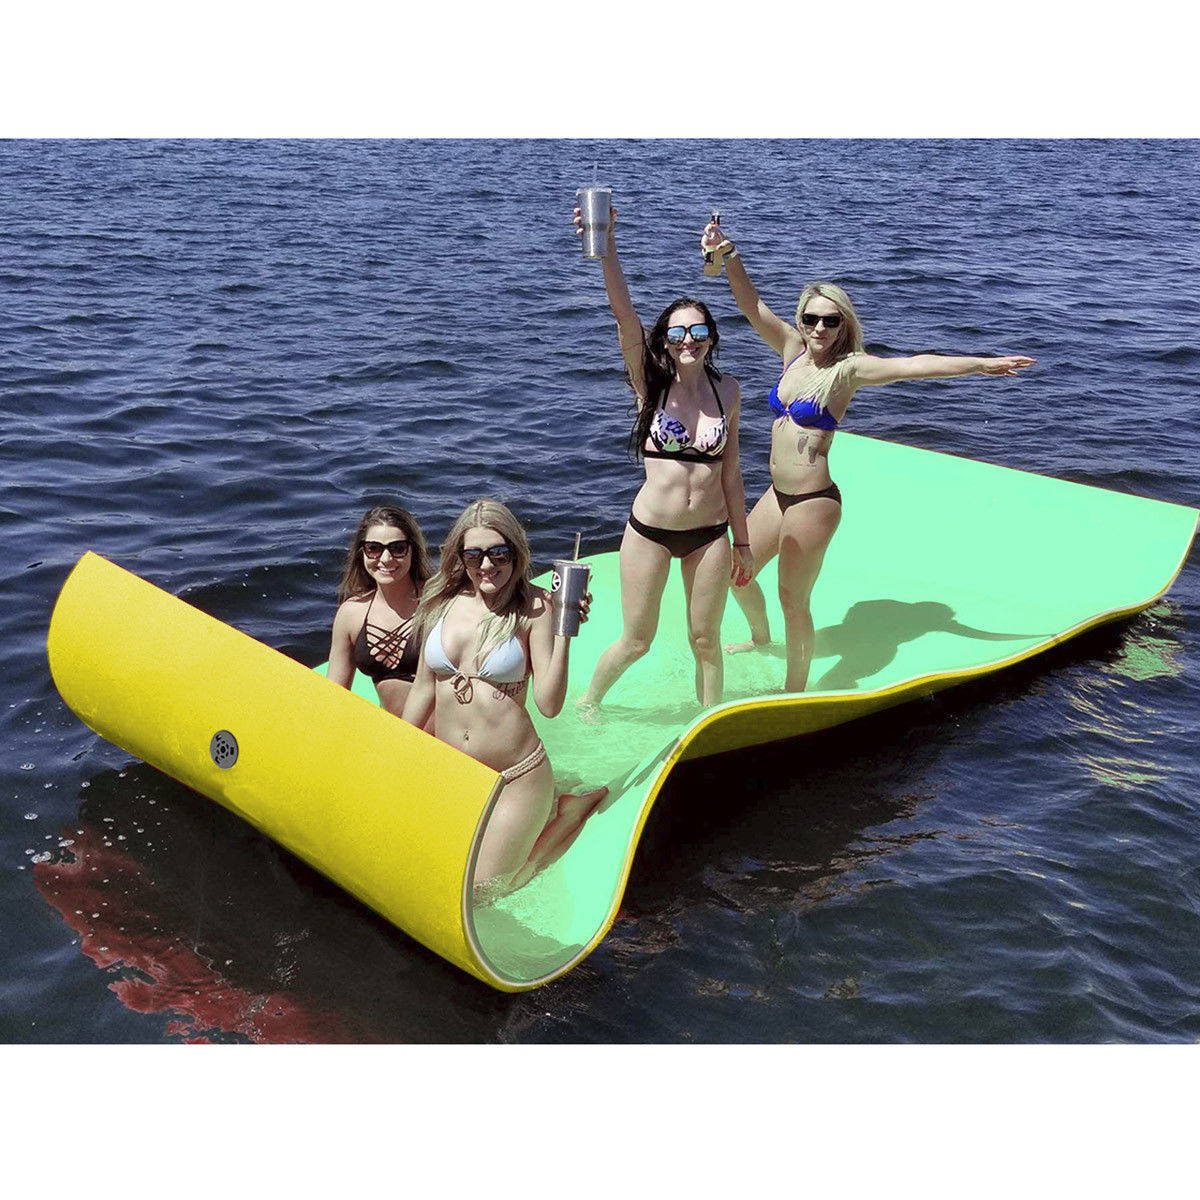 Gymax 3-layer Water Mat Floating Pad Island Water Sports Recreation Relaxing 11.5FT